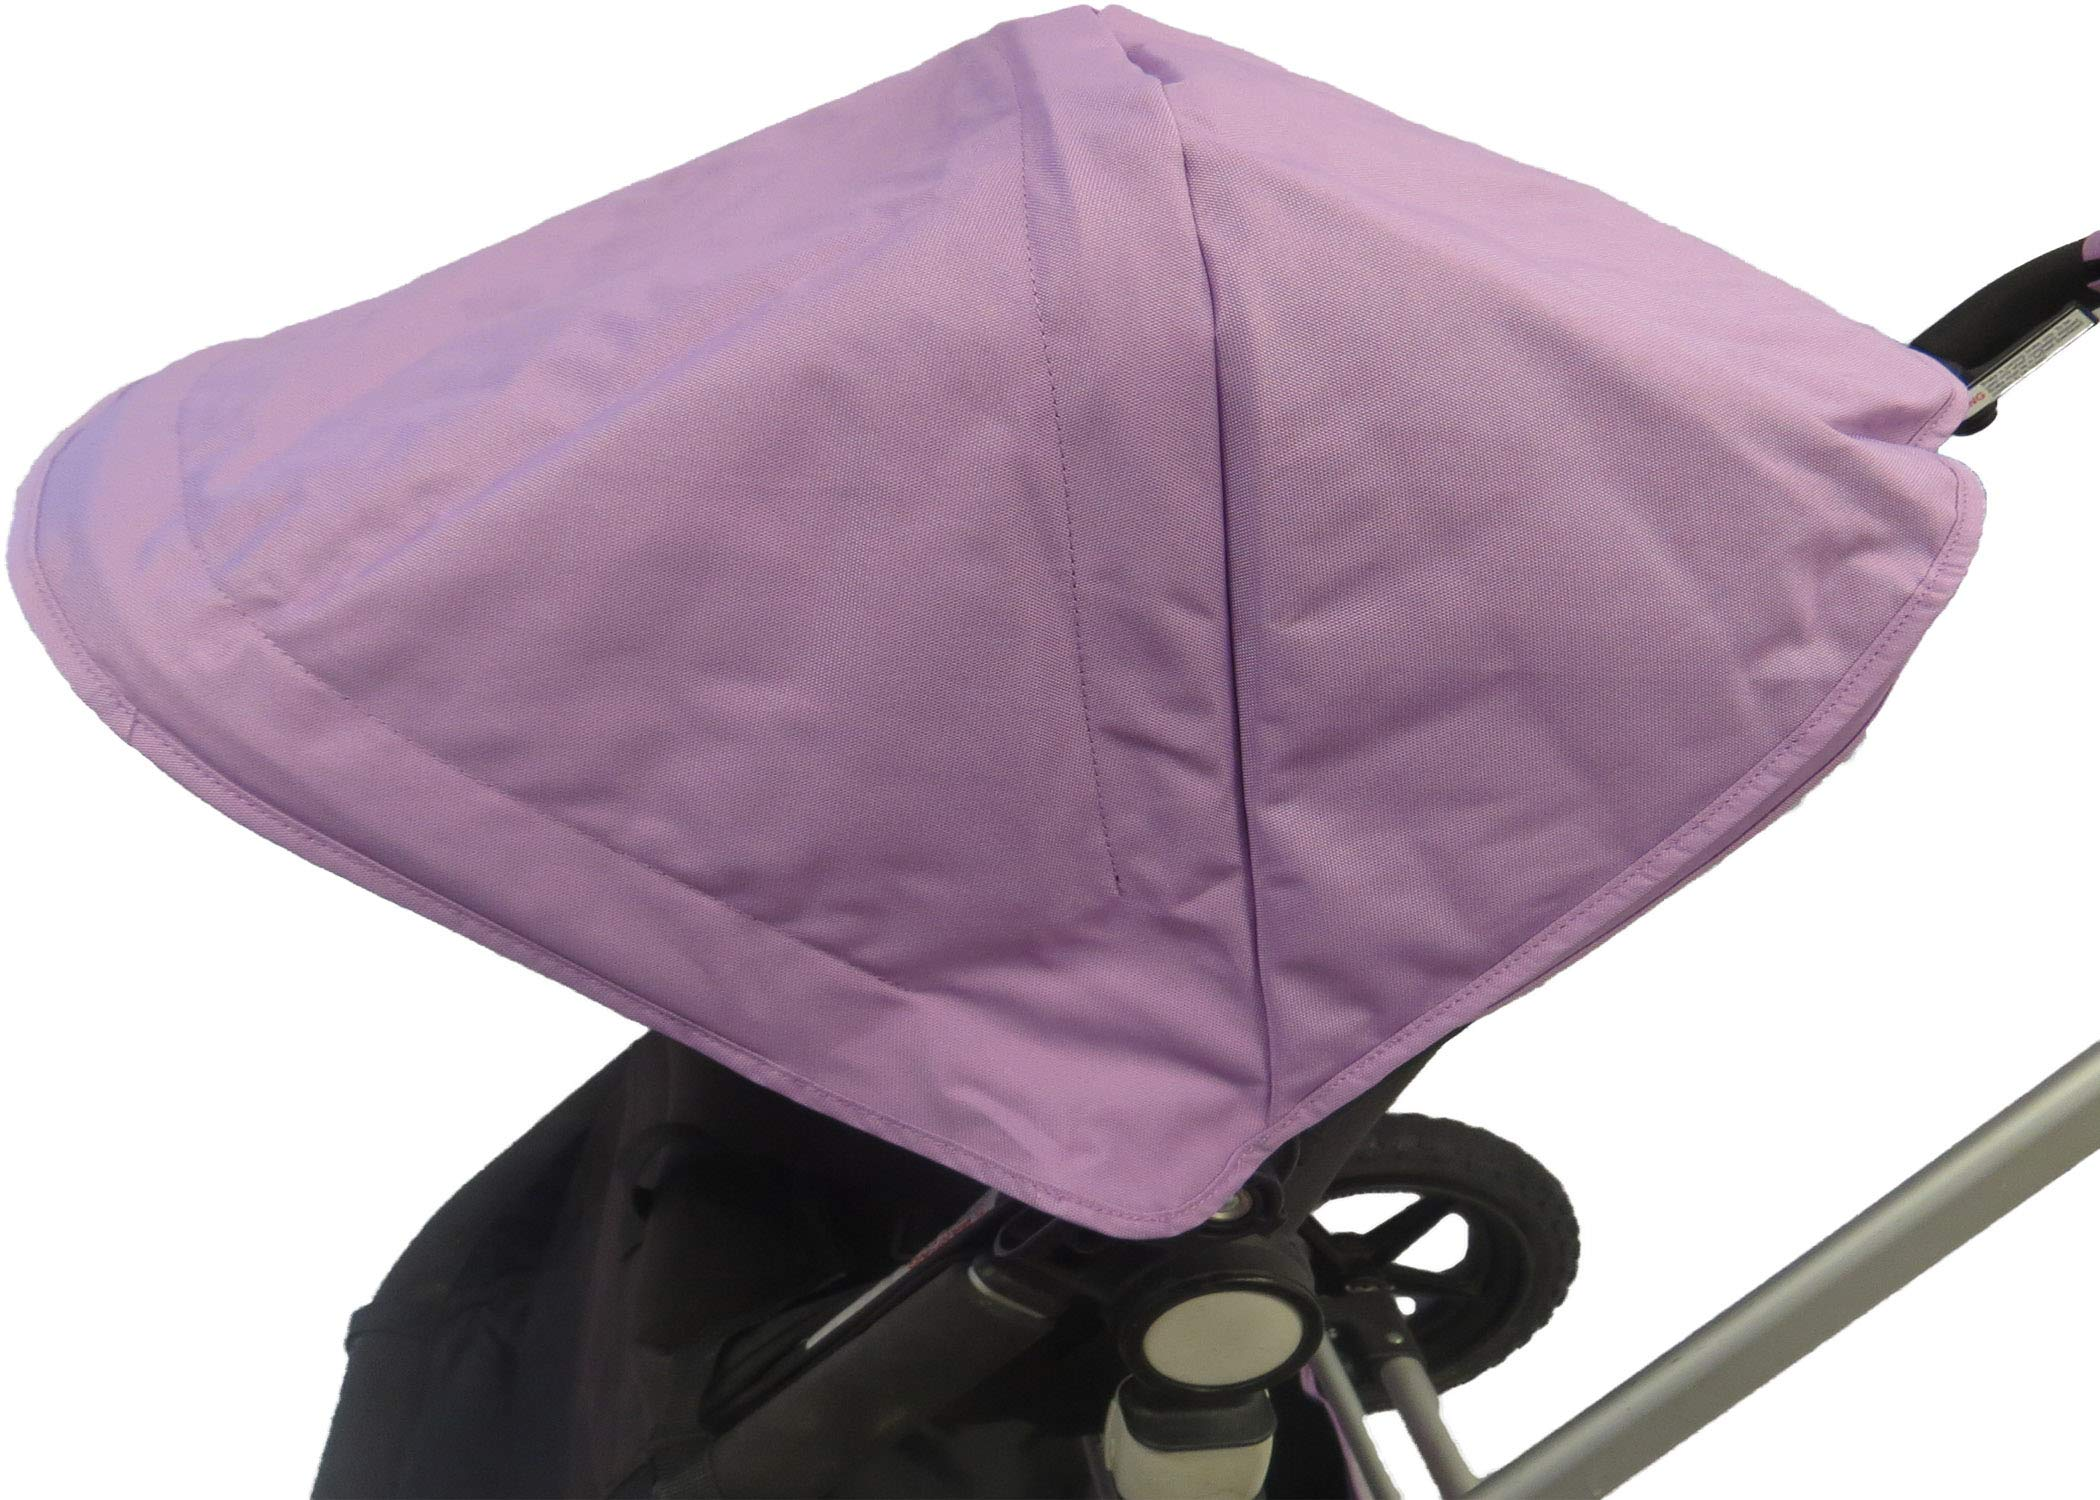 Light Purple Sun Shade Canopy Wires and Large Under Seat Storage Basket Plus Free Handle Bar Covers for Bugaboo Cameleon 1, 2, 3, Frog Baby Child Strollers by Ponini (Image #5)